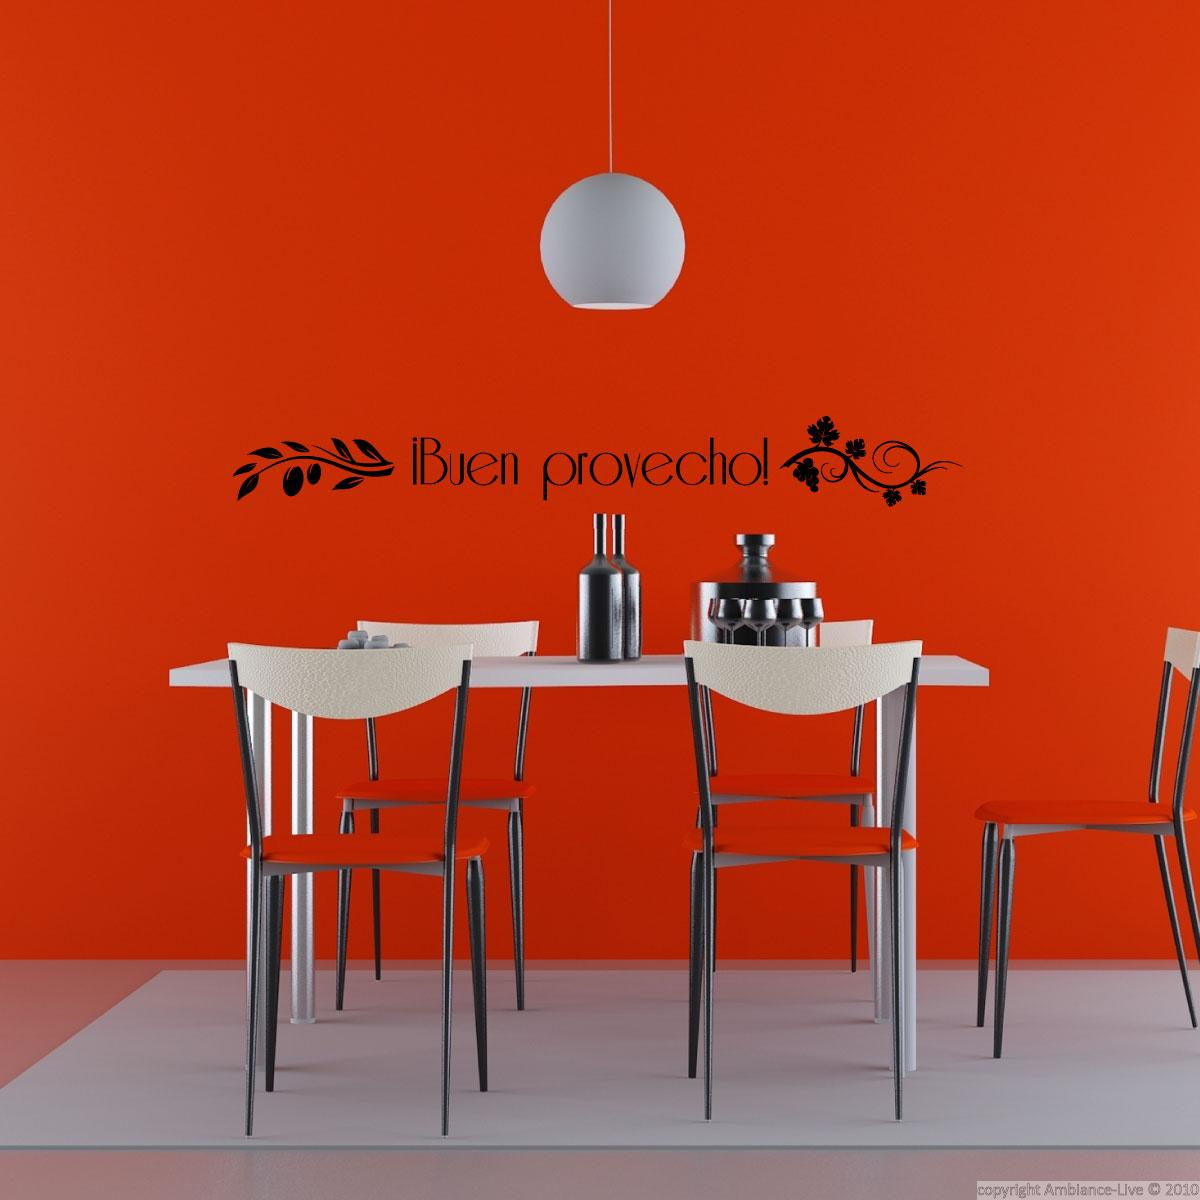 Wall decal buen provecho decoration wall decals for Ambiance decoration